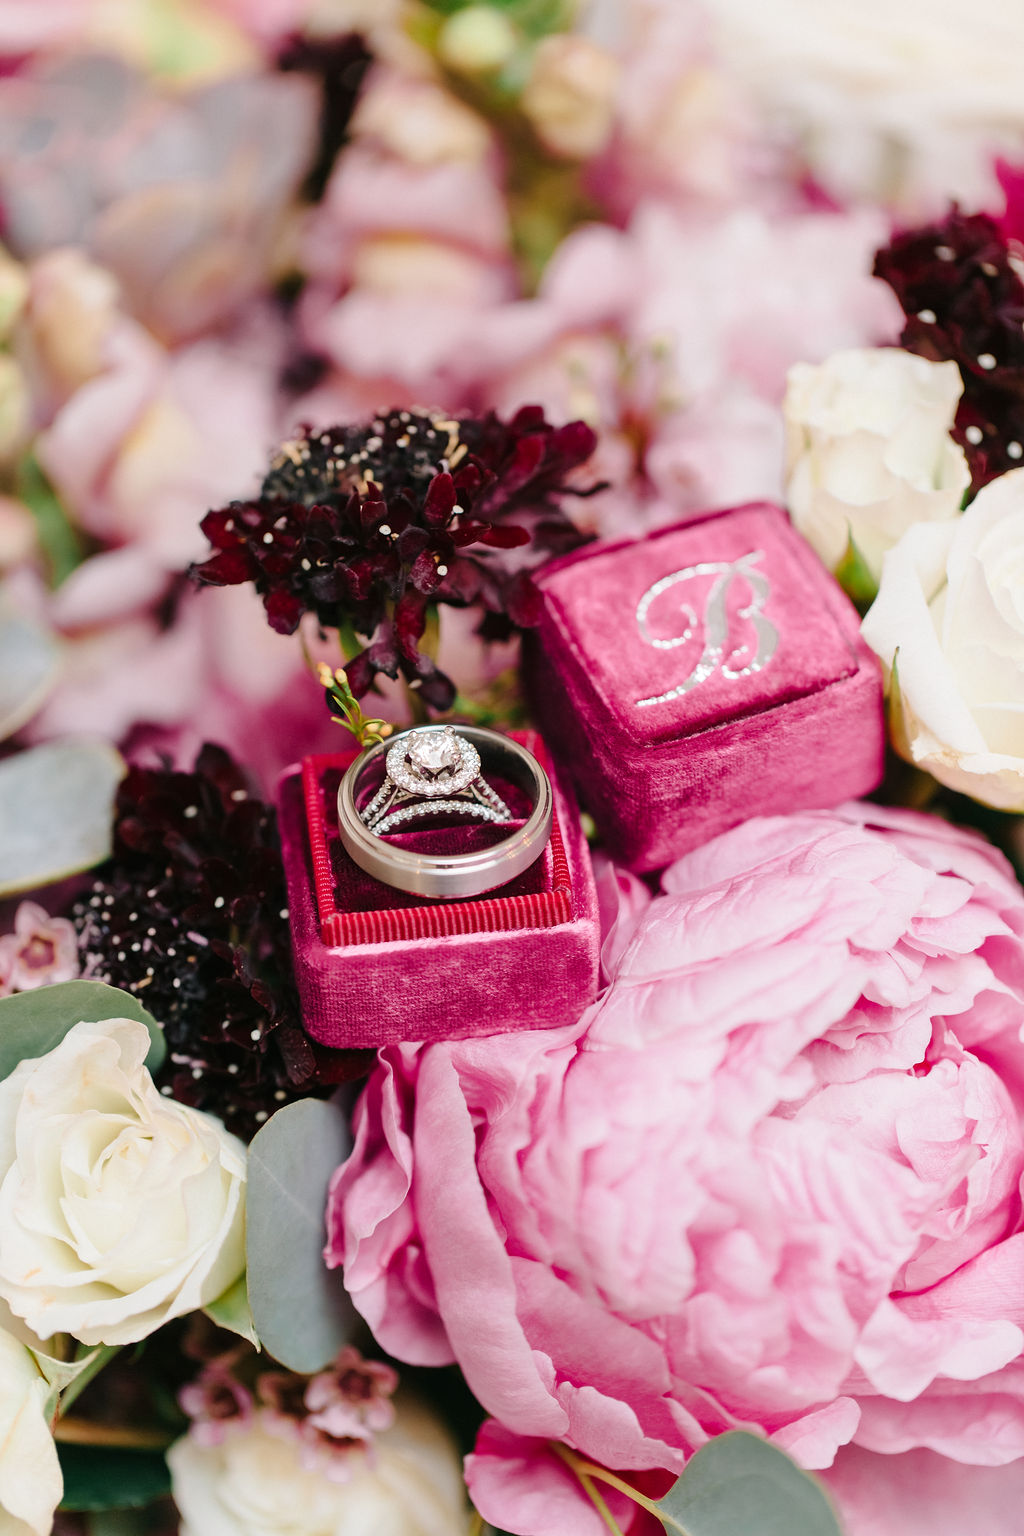 Velvet Dark Pink Ring Box With Wedding And Engagement Ring On Bed Of